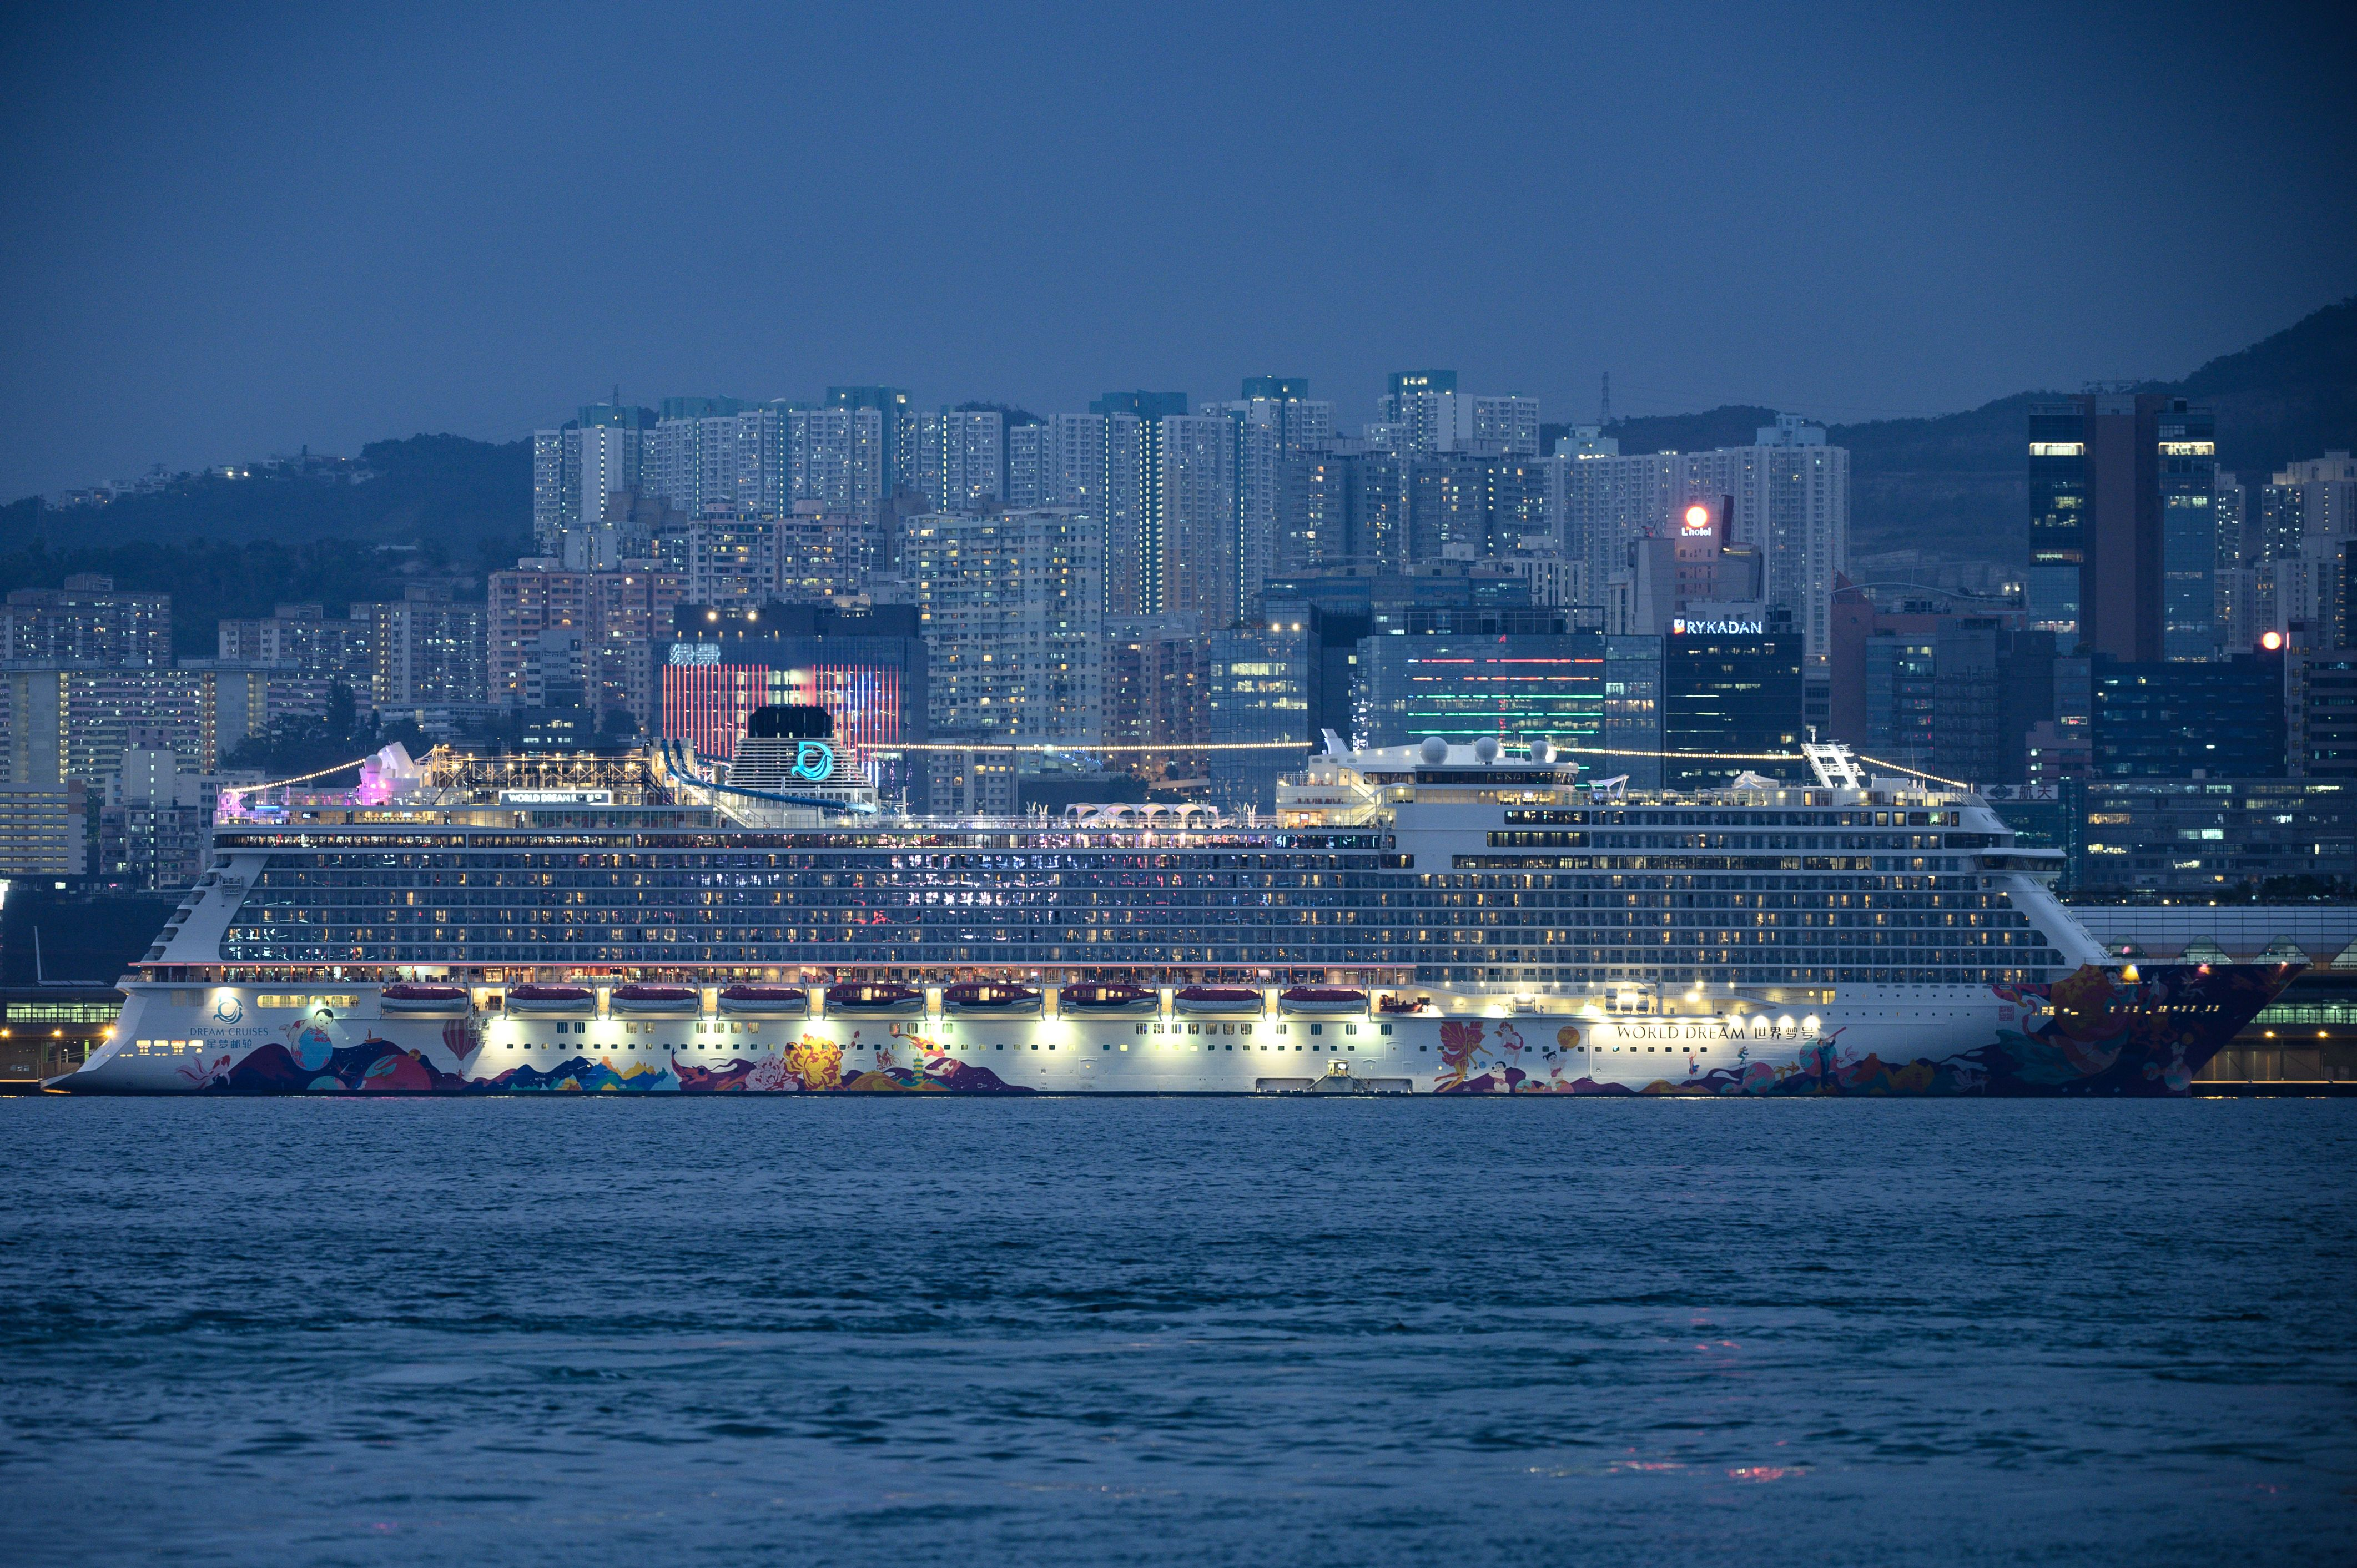 The World Dream is seen docked at Kai Tak Cruise Terminal in Hong Kong on Thursday.